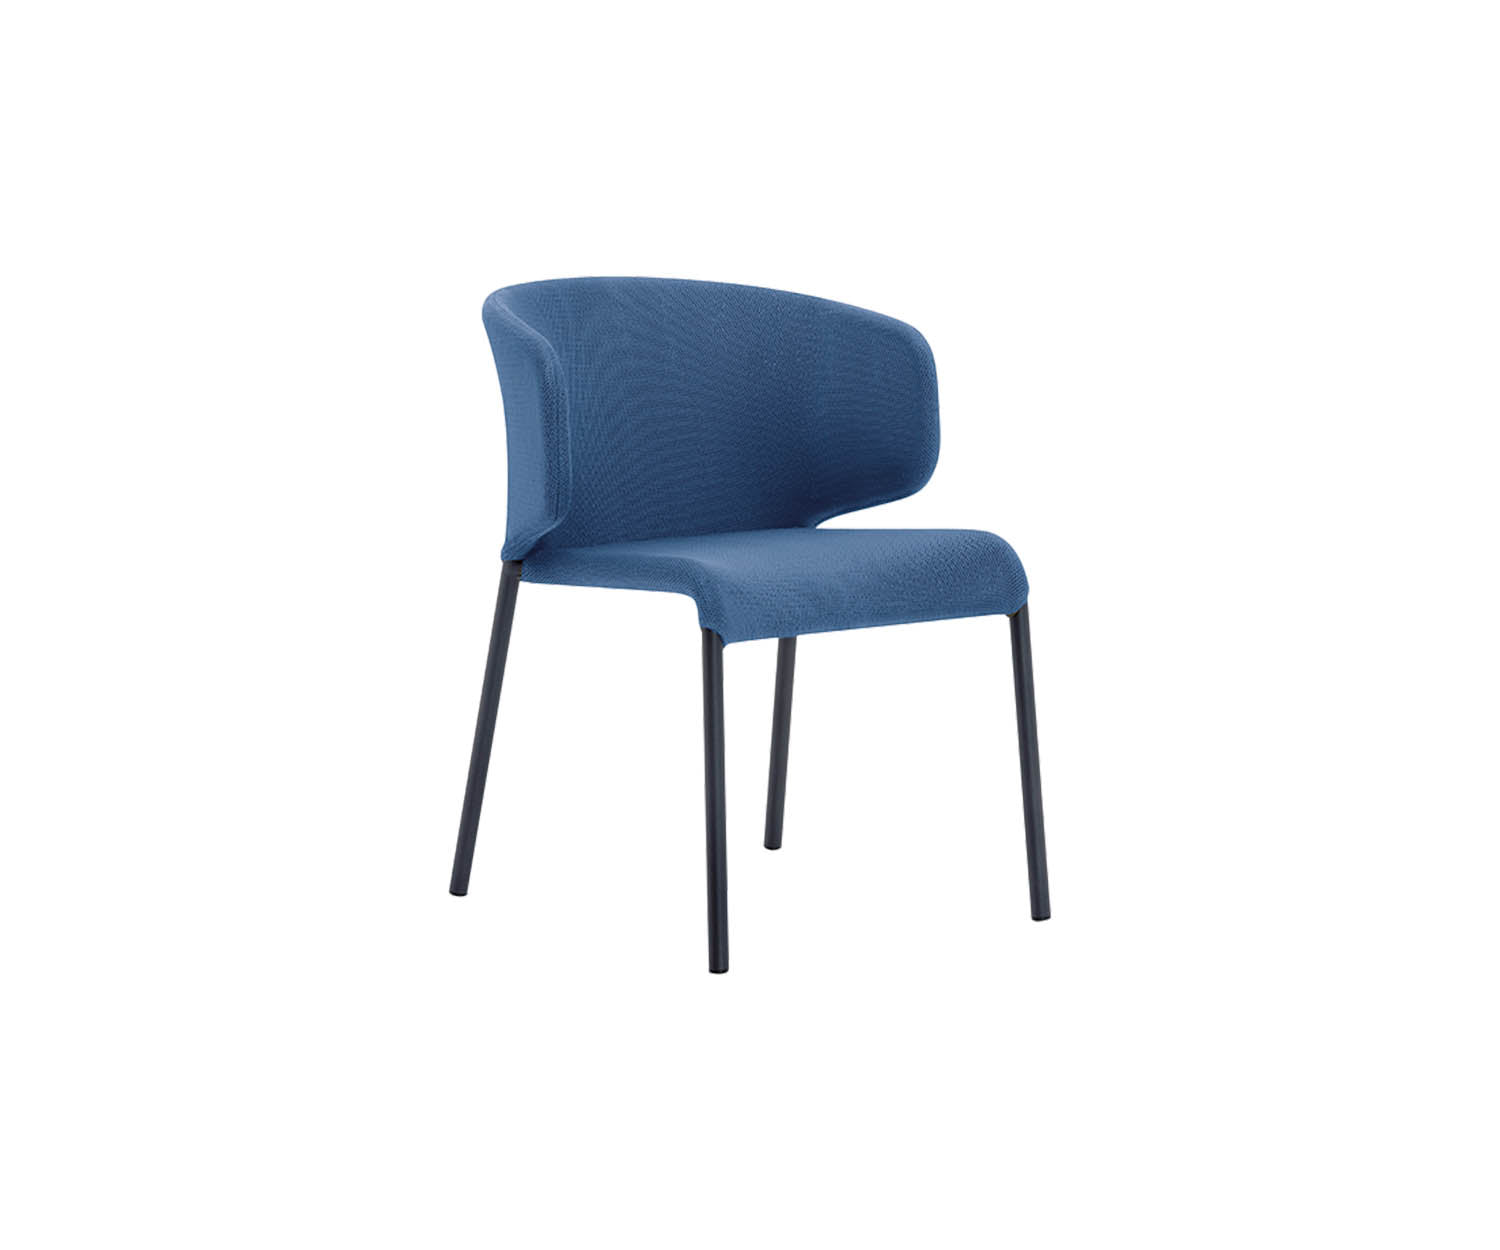 Double 011 Dining Chair Roda